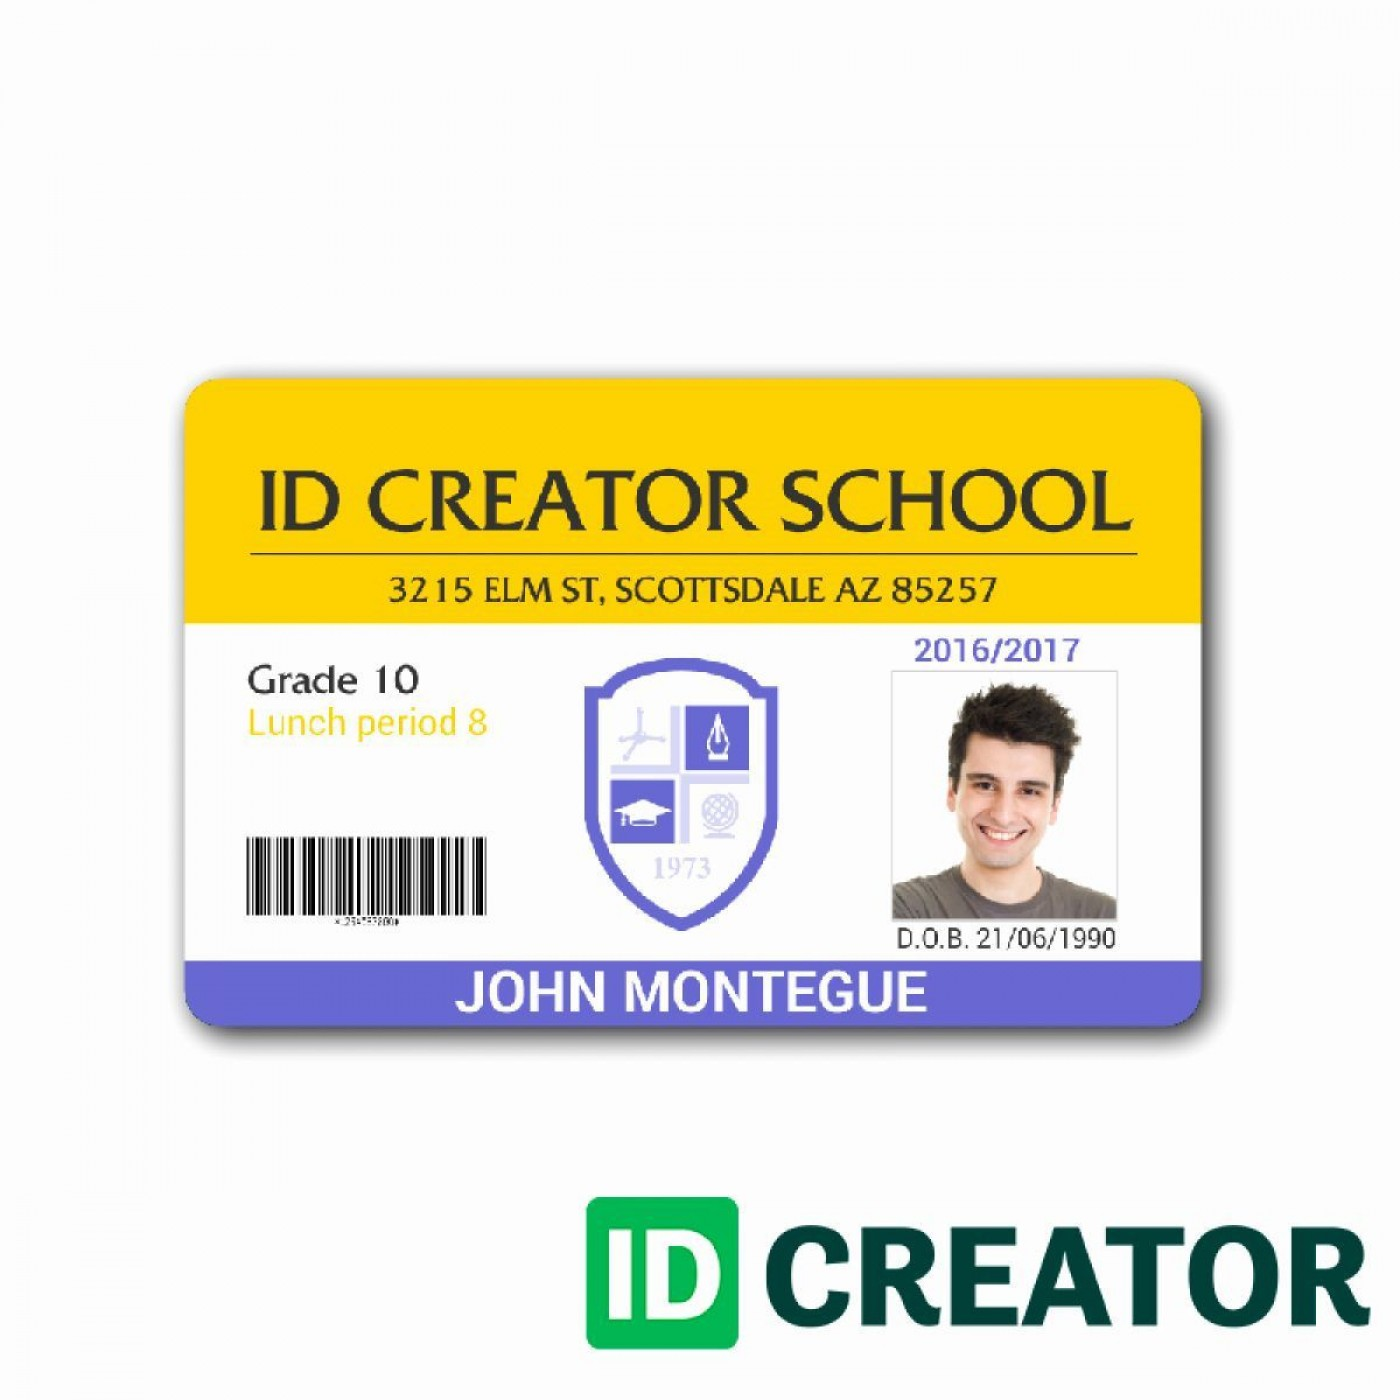 009 Sensational Student Id Card Template Concept  Psd Free School Microsoft Word Download1400